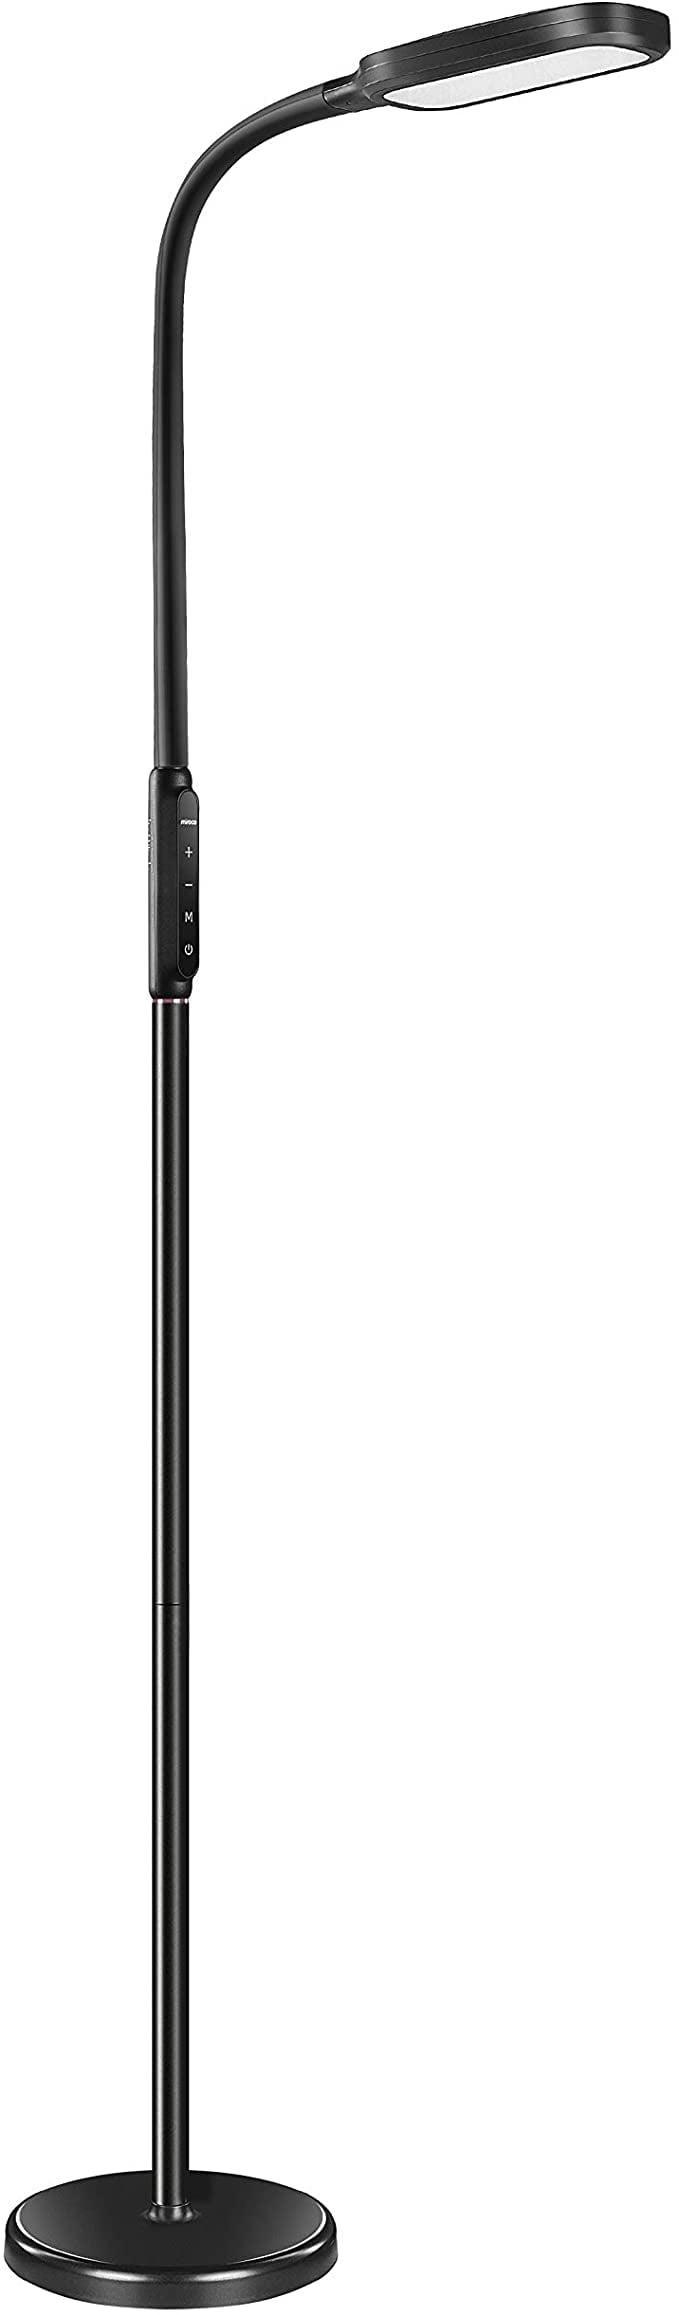 <p>This <span>Miroco LED Floor Lamp with 5 Brightness Levels &amp; 3 Color Temperatures</span> ($50) is an awesome lamp, and gives plenty of light while still being sensitive to nighttime.</p>